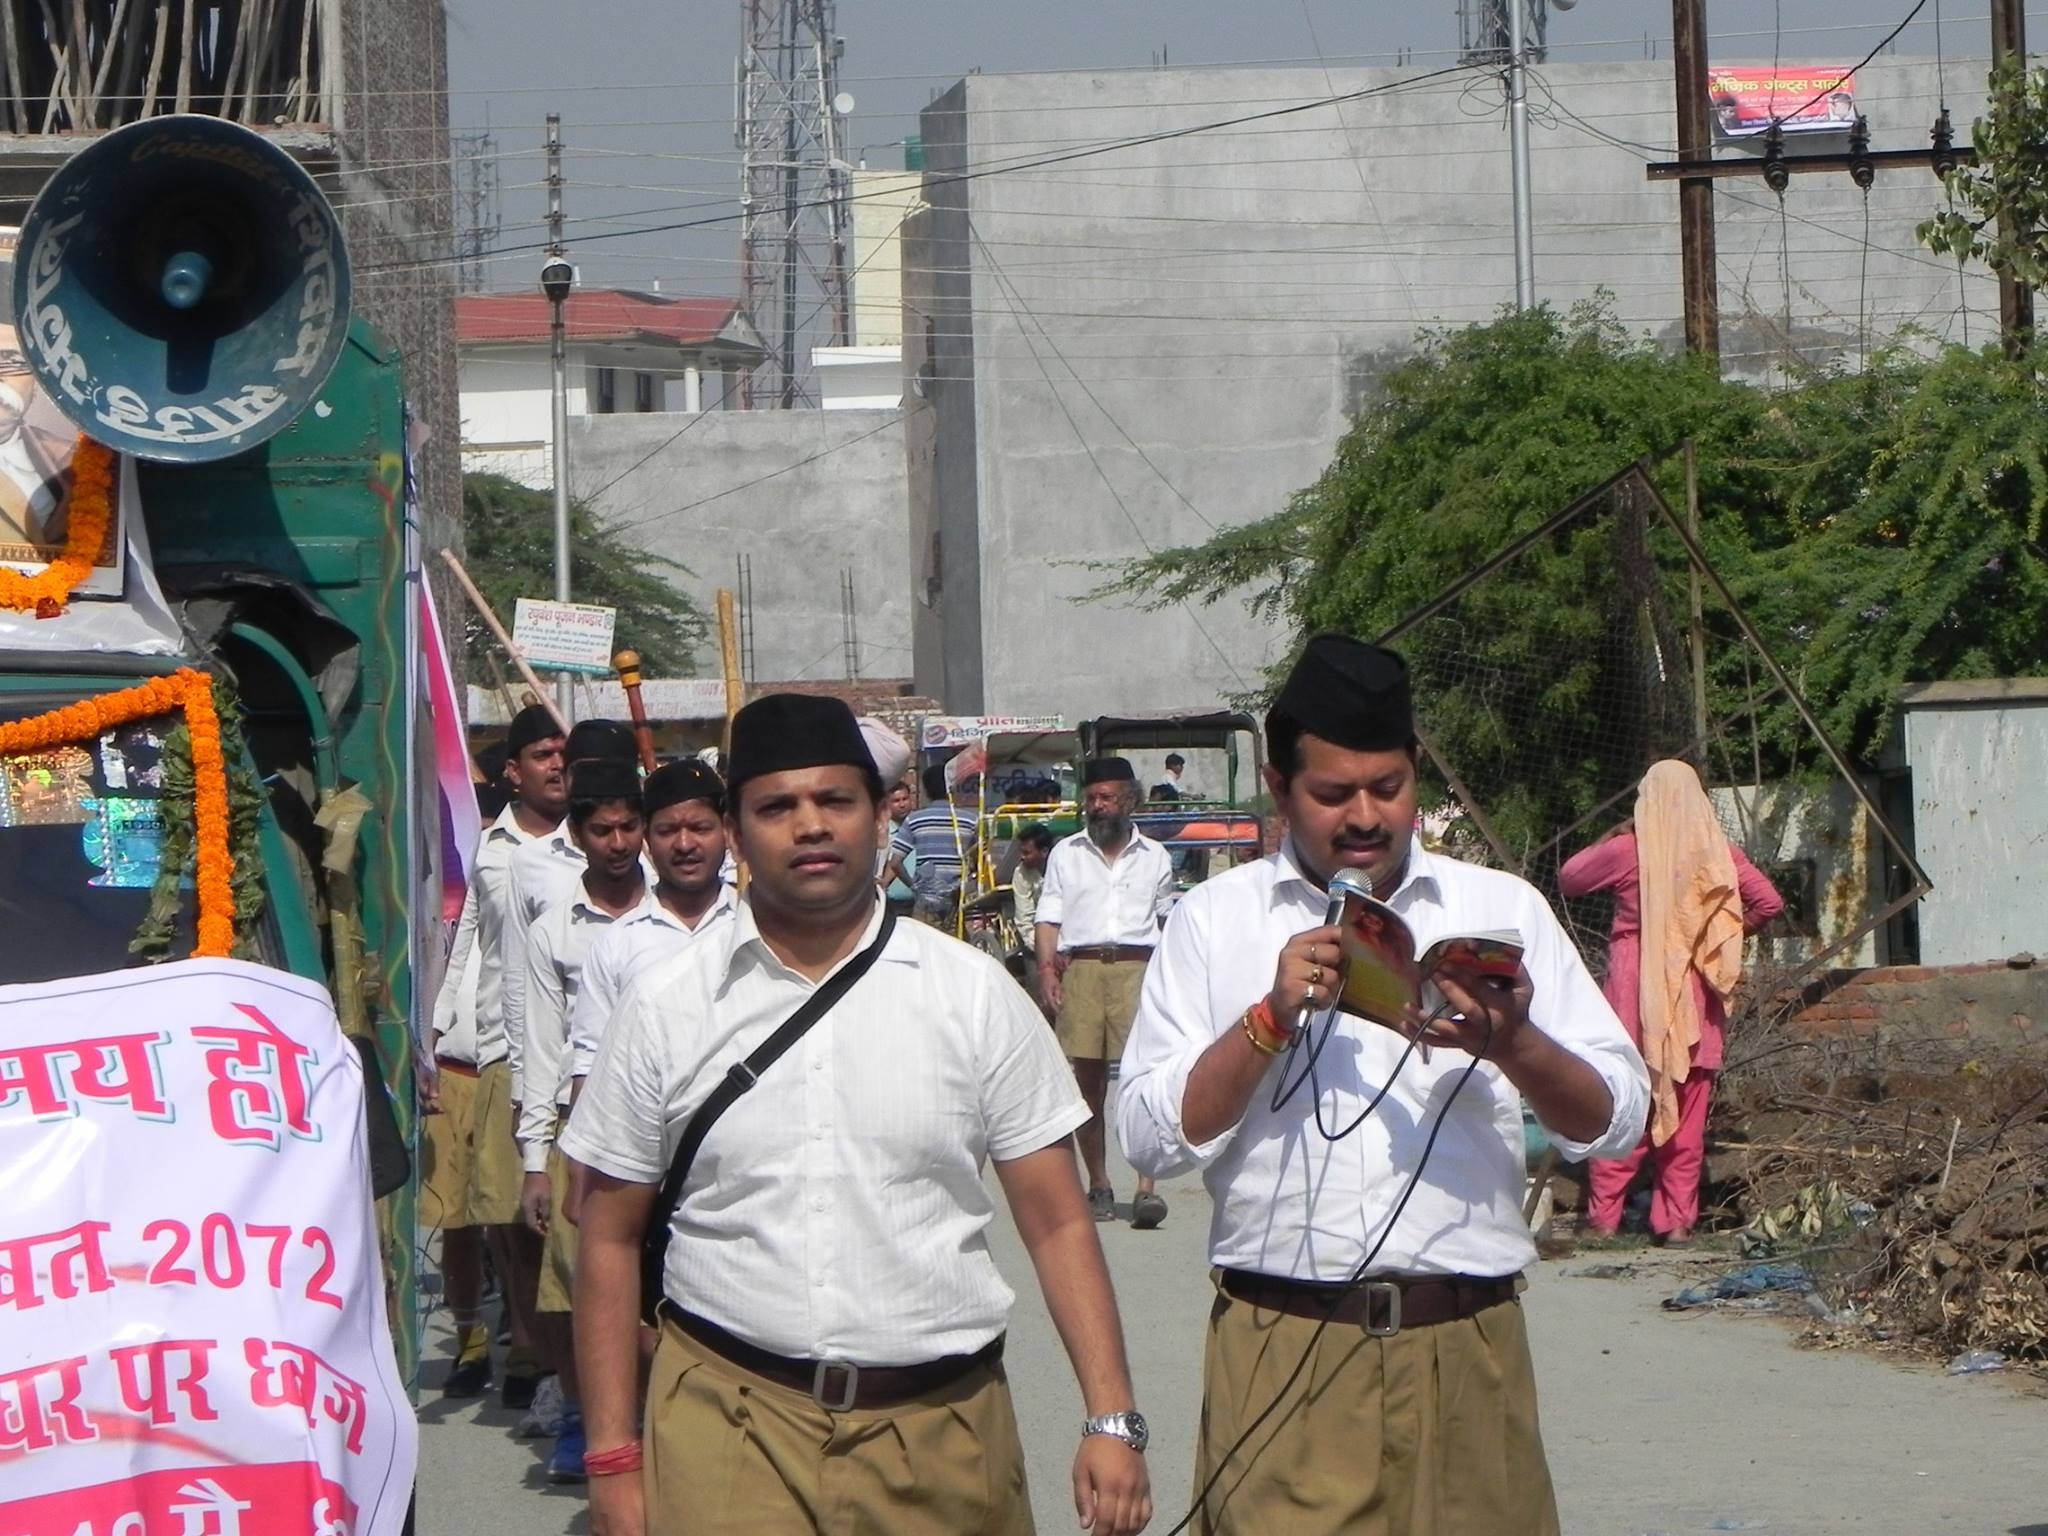 Tanmay Shankar marching as part of an RSS procession. Credit: Tanmay Shankar's Facebook page